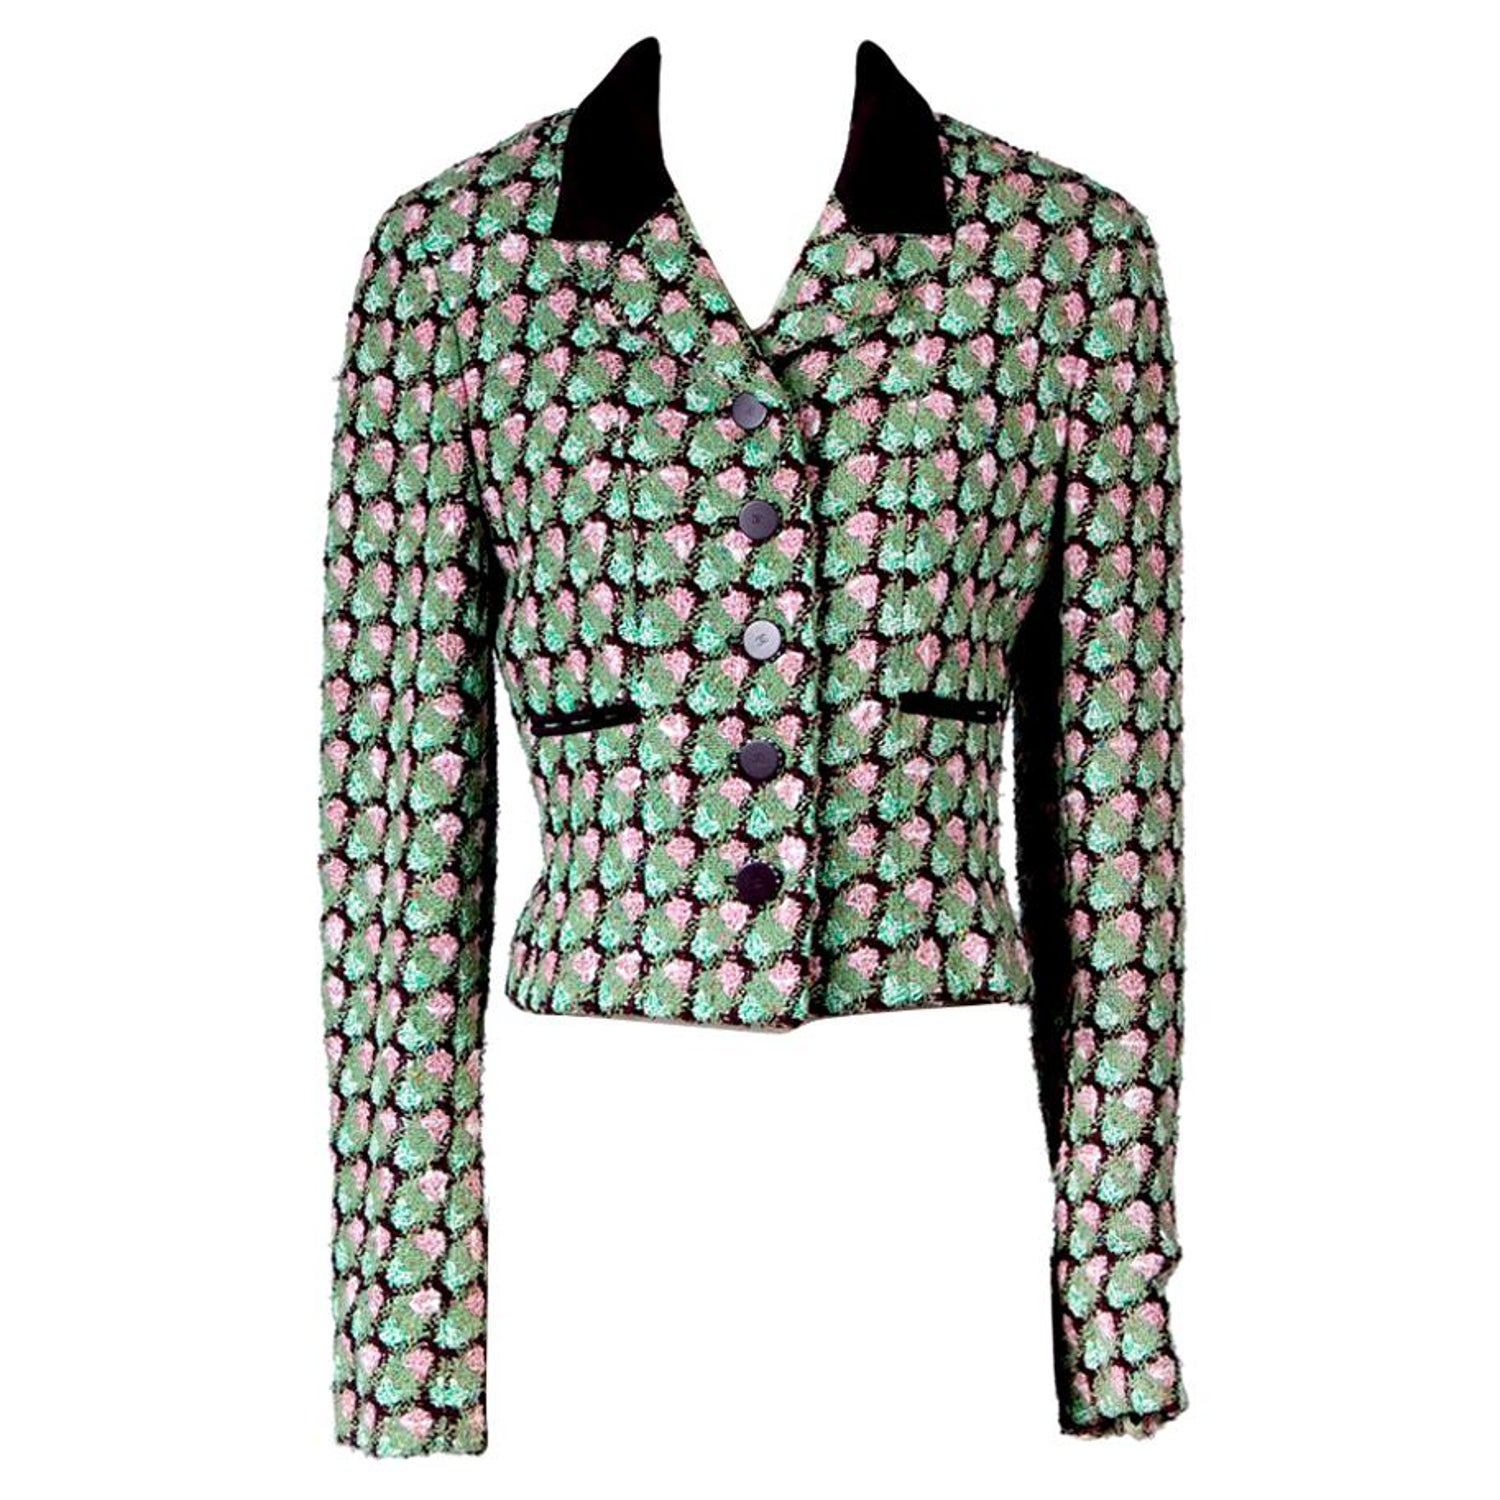 553d4d38a85ada Chanel Pink and Green Tweed Jacket, Spring 2002 at 1stdibs